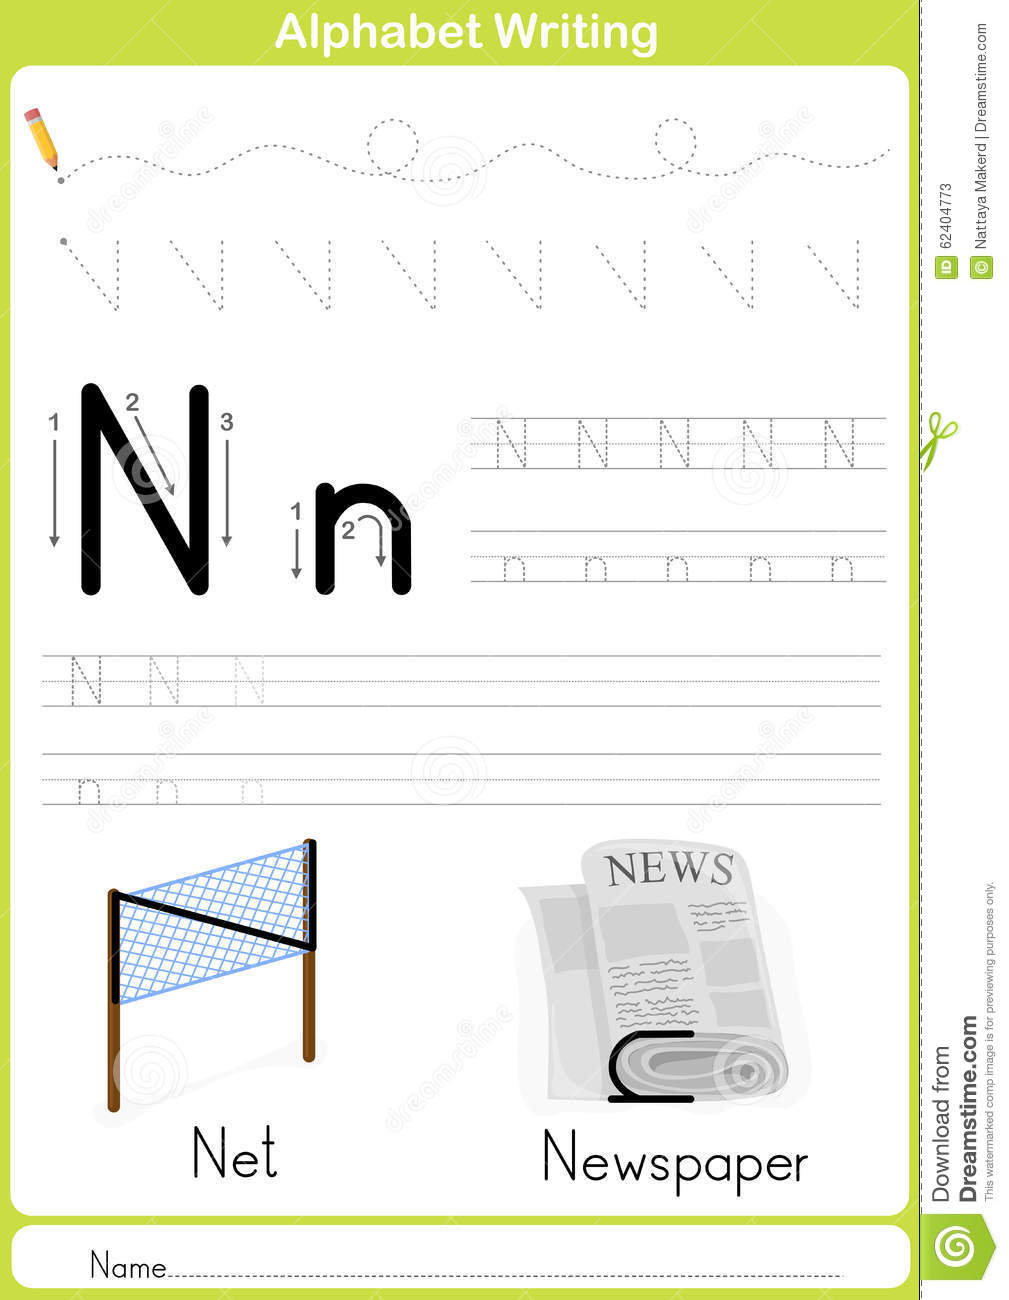 alphabet writing paper Free, printable lined writing paper for kids over 1,500 ela worksheet lesson activities for class or home use click to get started.